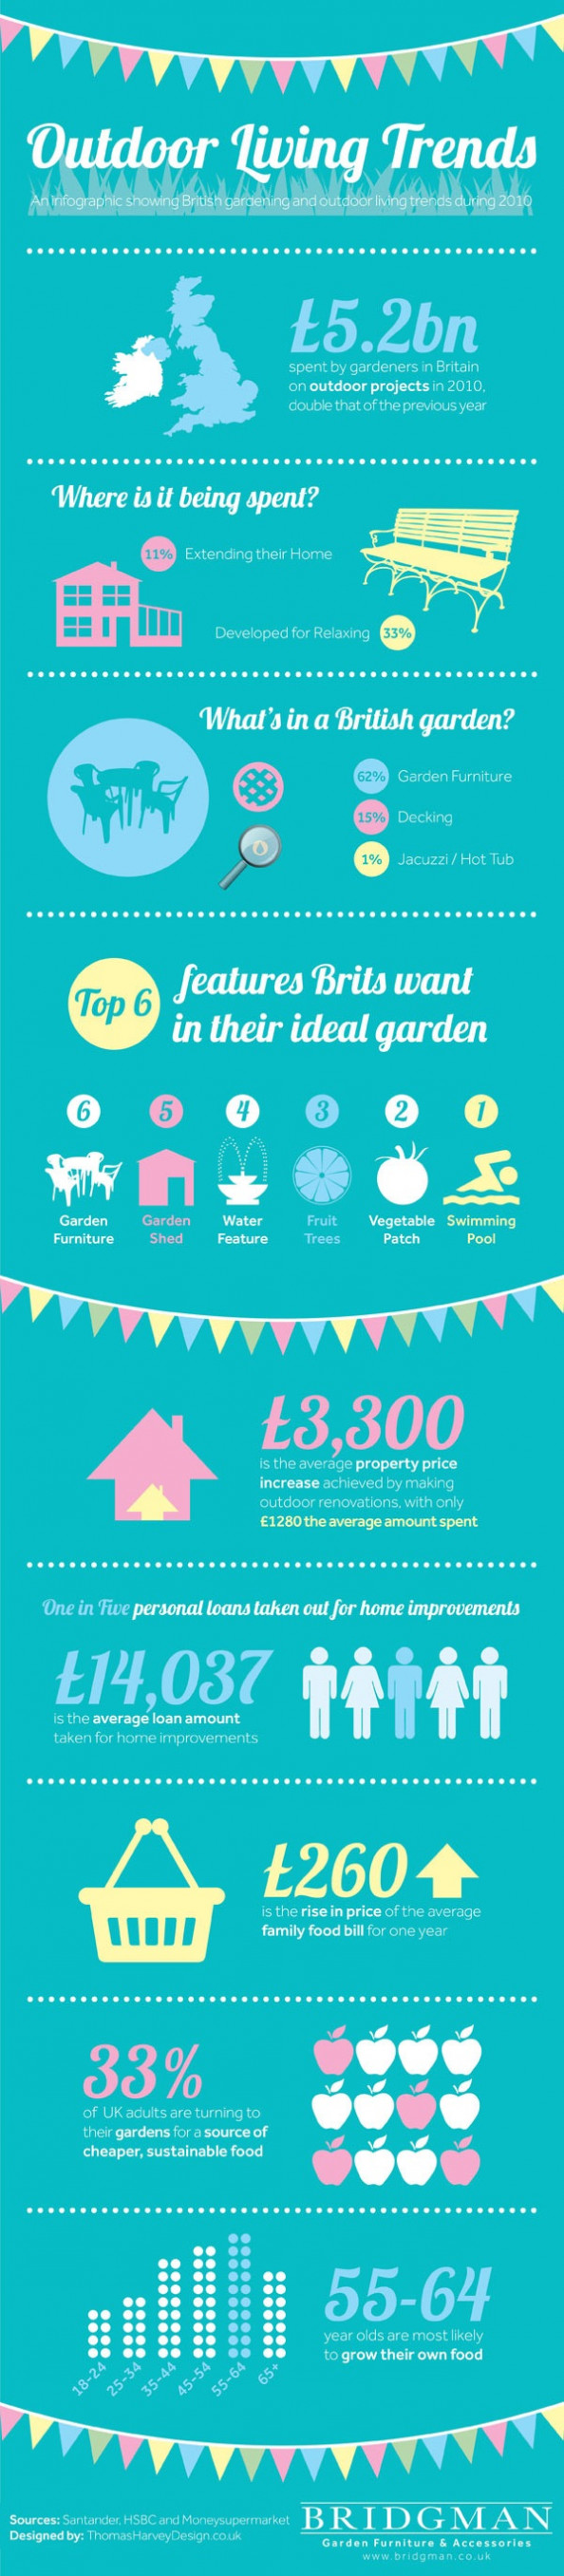 Garden &amp; Home Improvement Trends Infographic